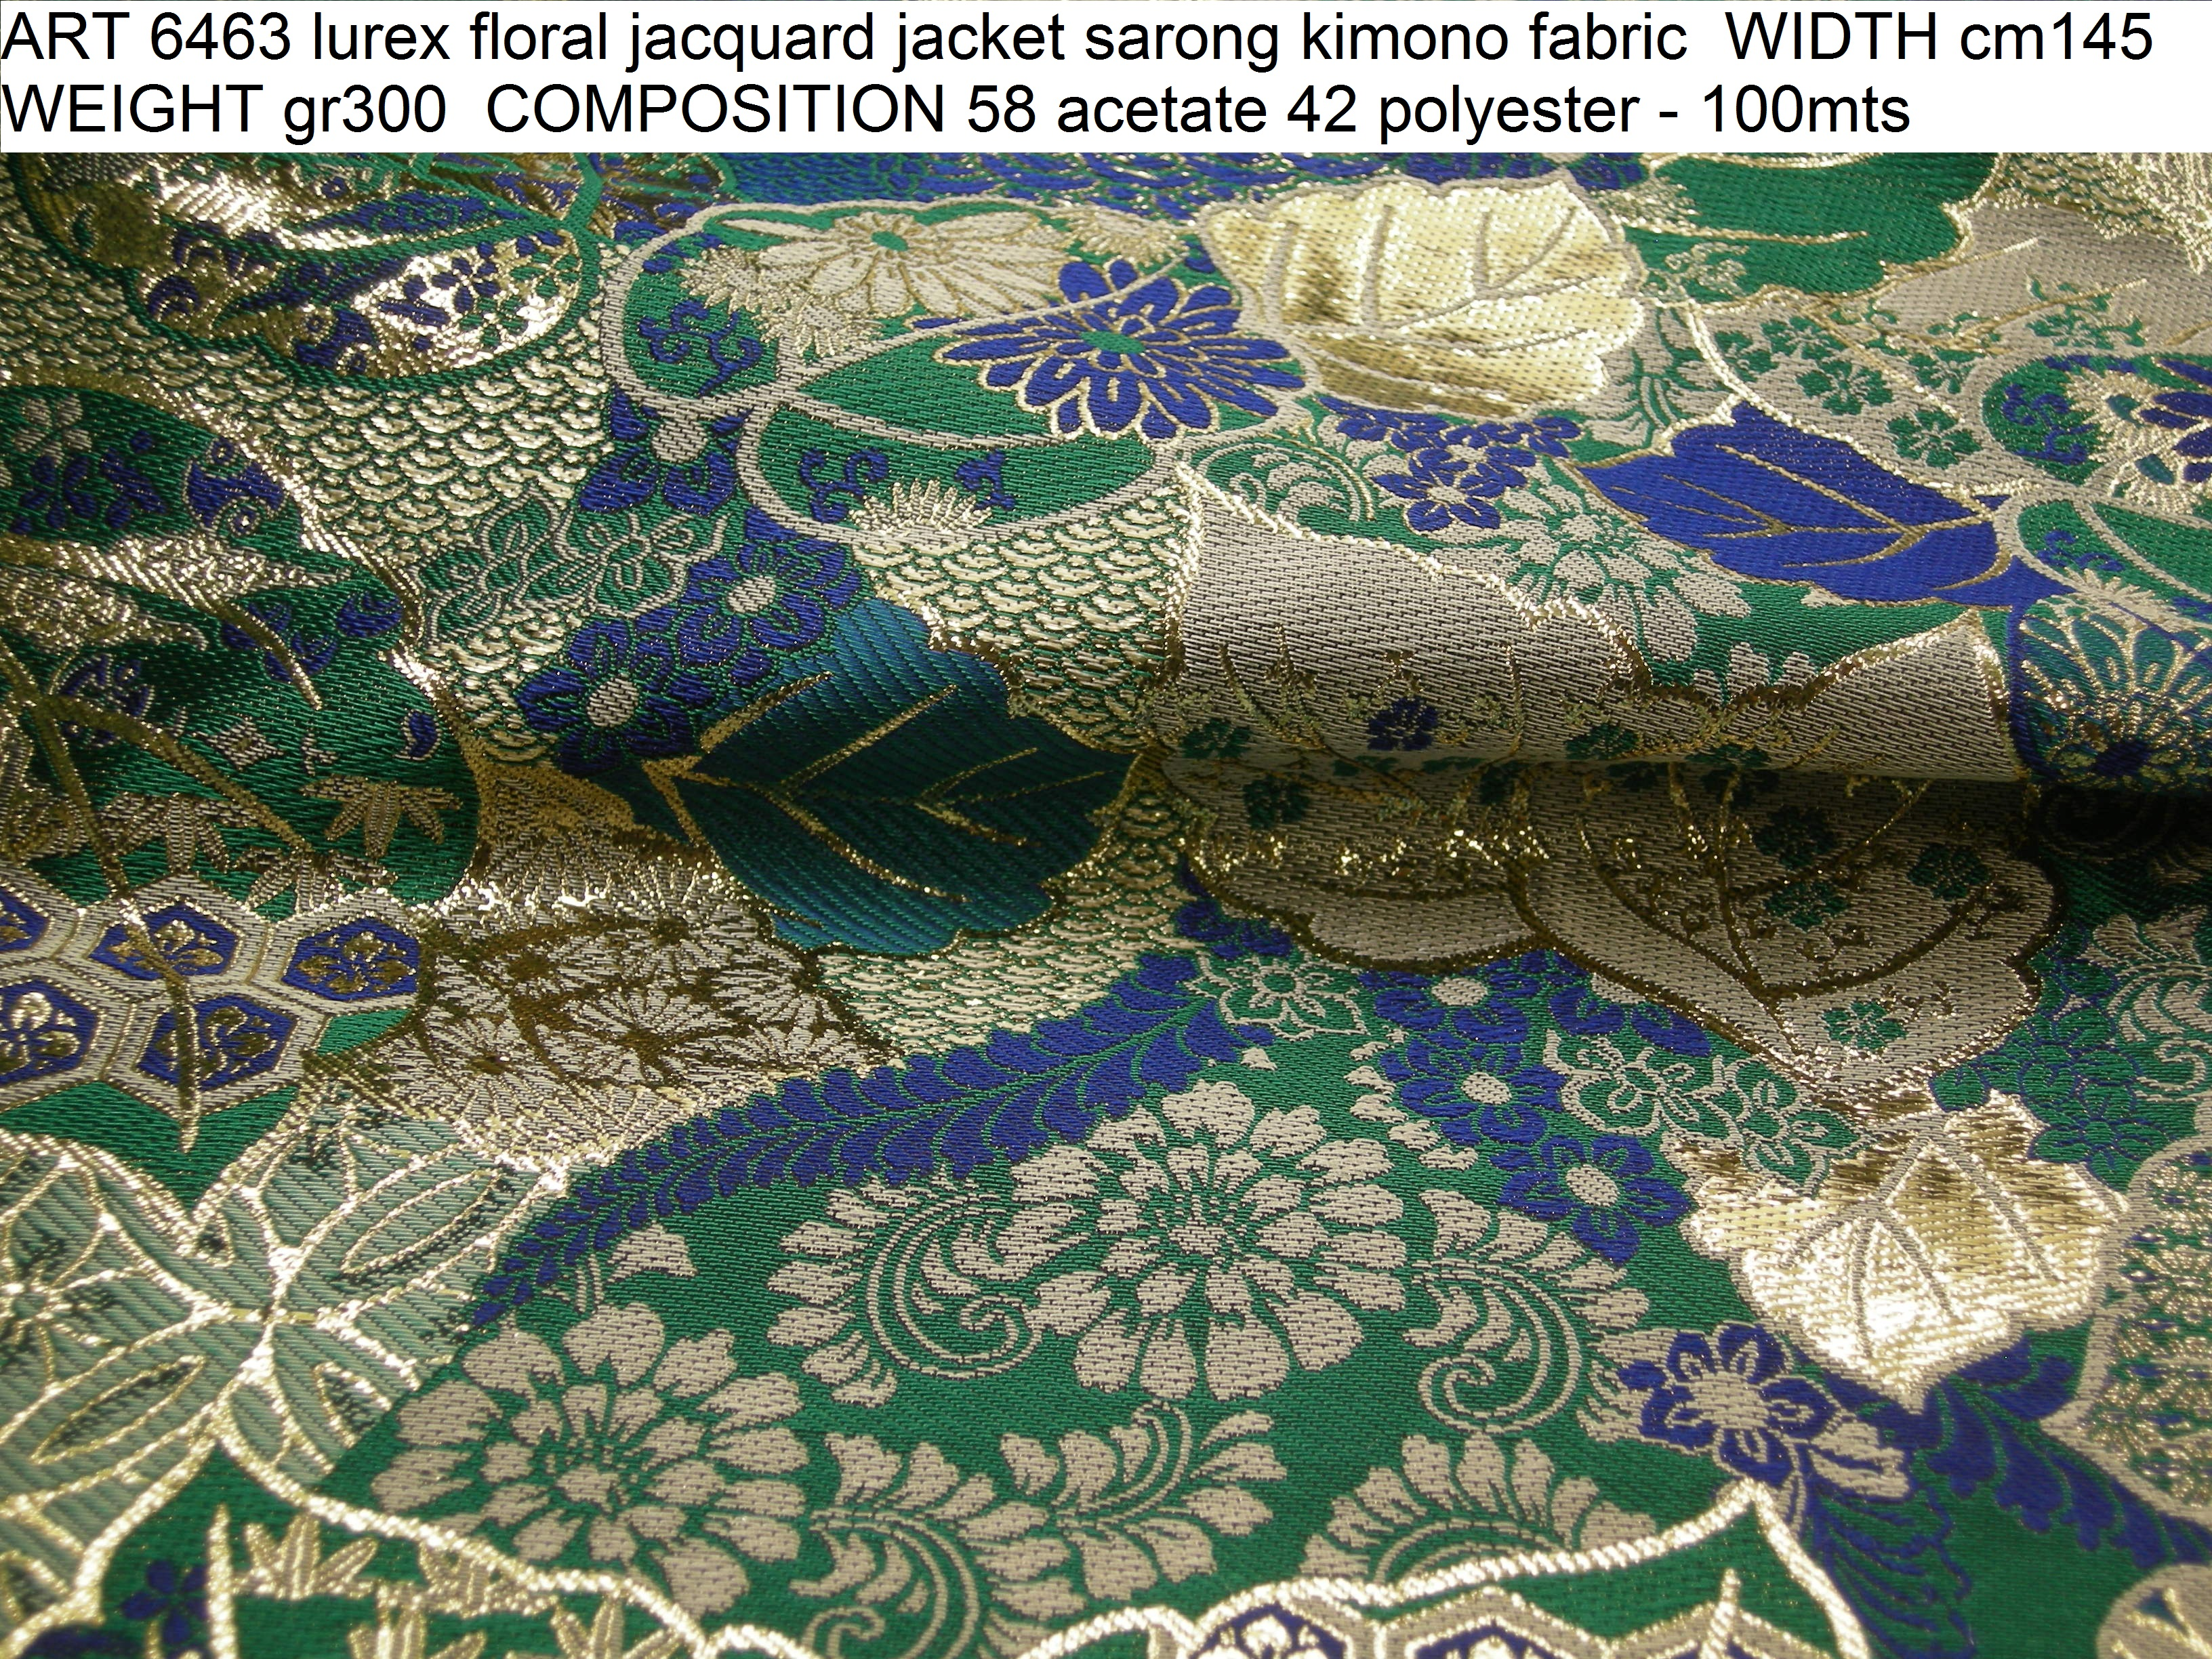 ART 6463 lurex floral jacquard jacket sarong kimono fabric WIDTH cm145 WEIGHT gr300 COMPOSITION 58 acetate 42 polyester - 100mts